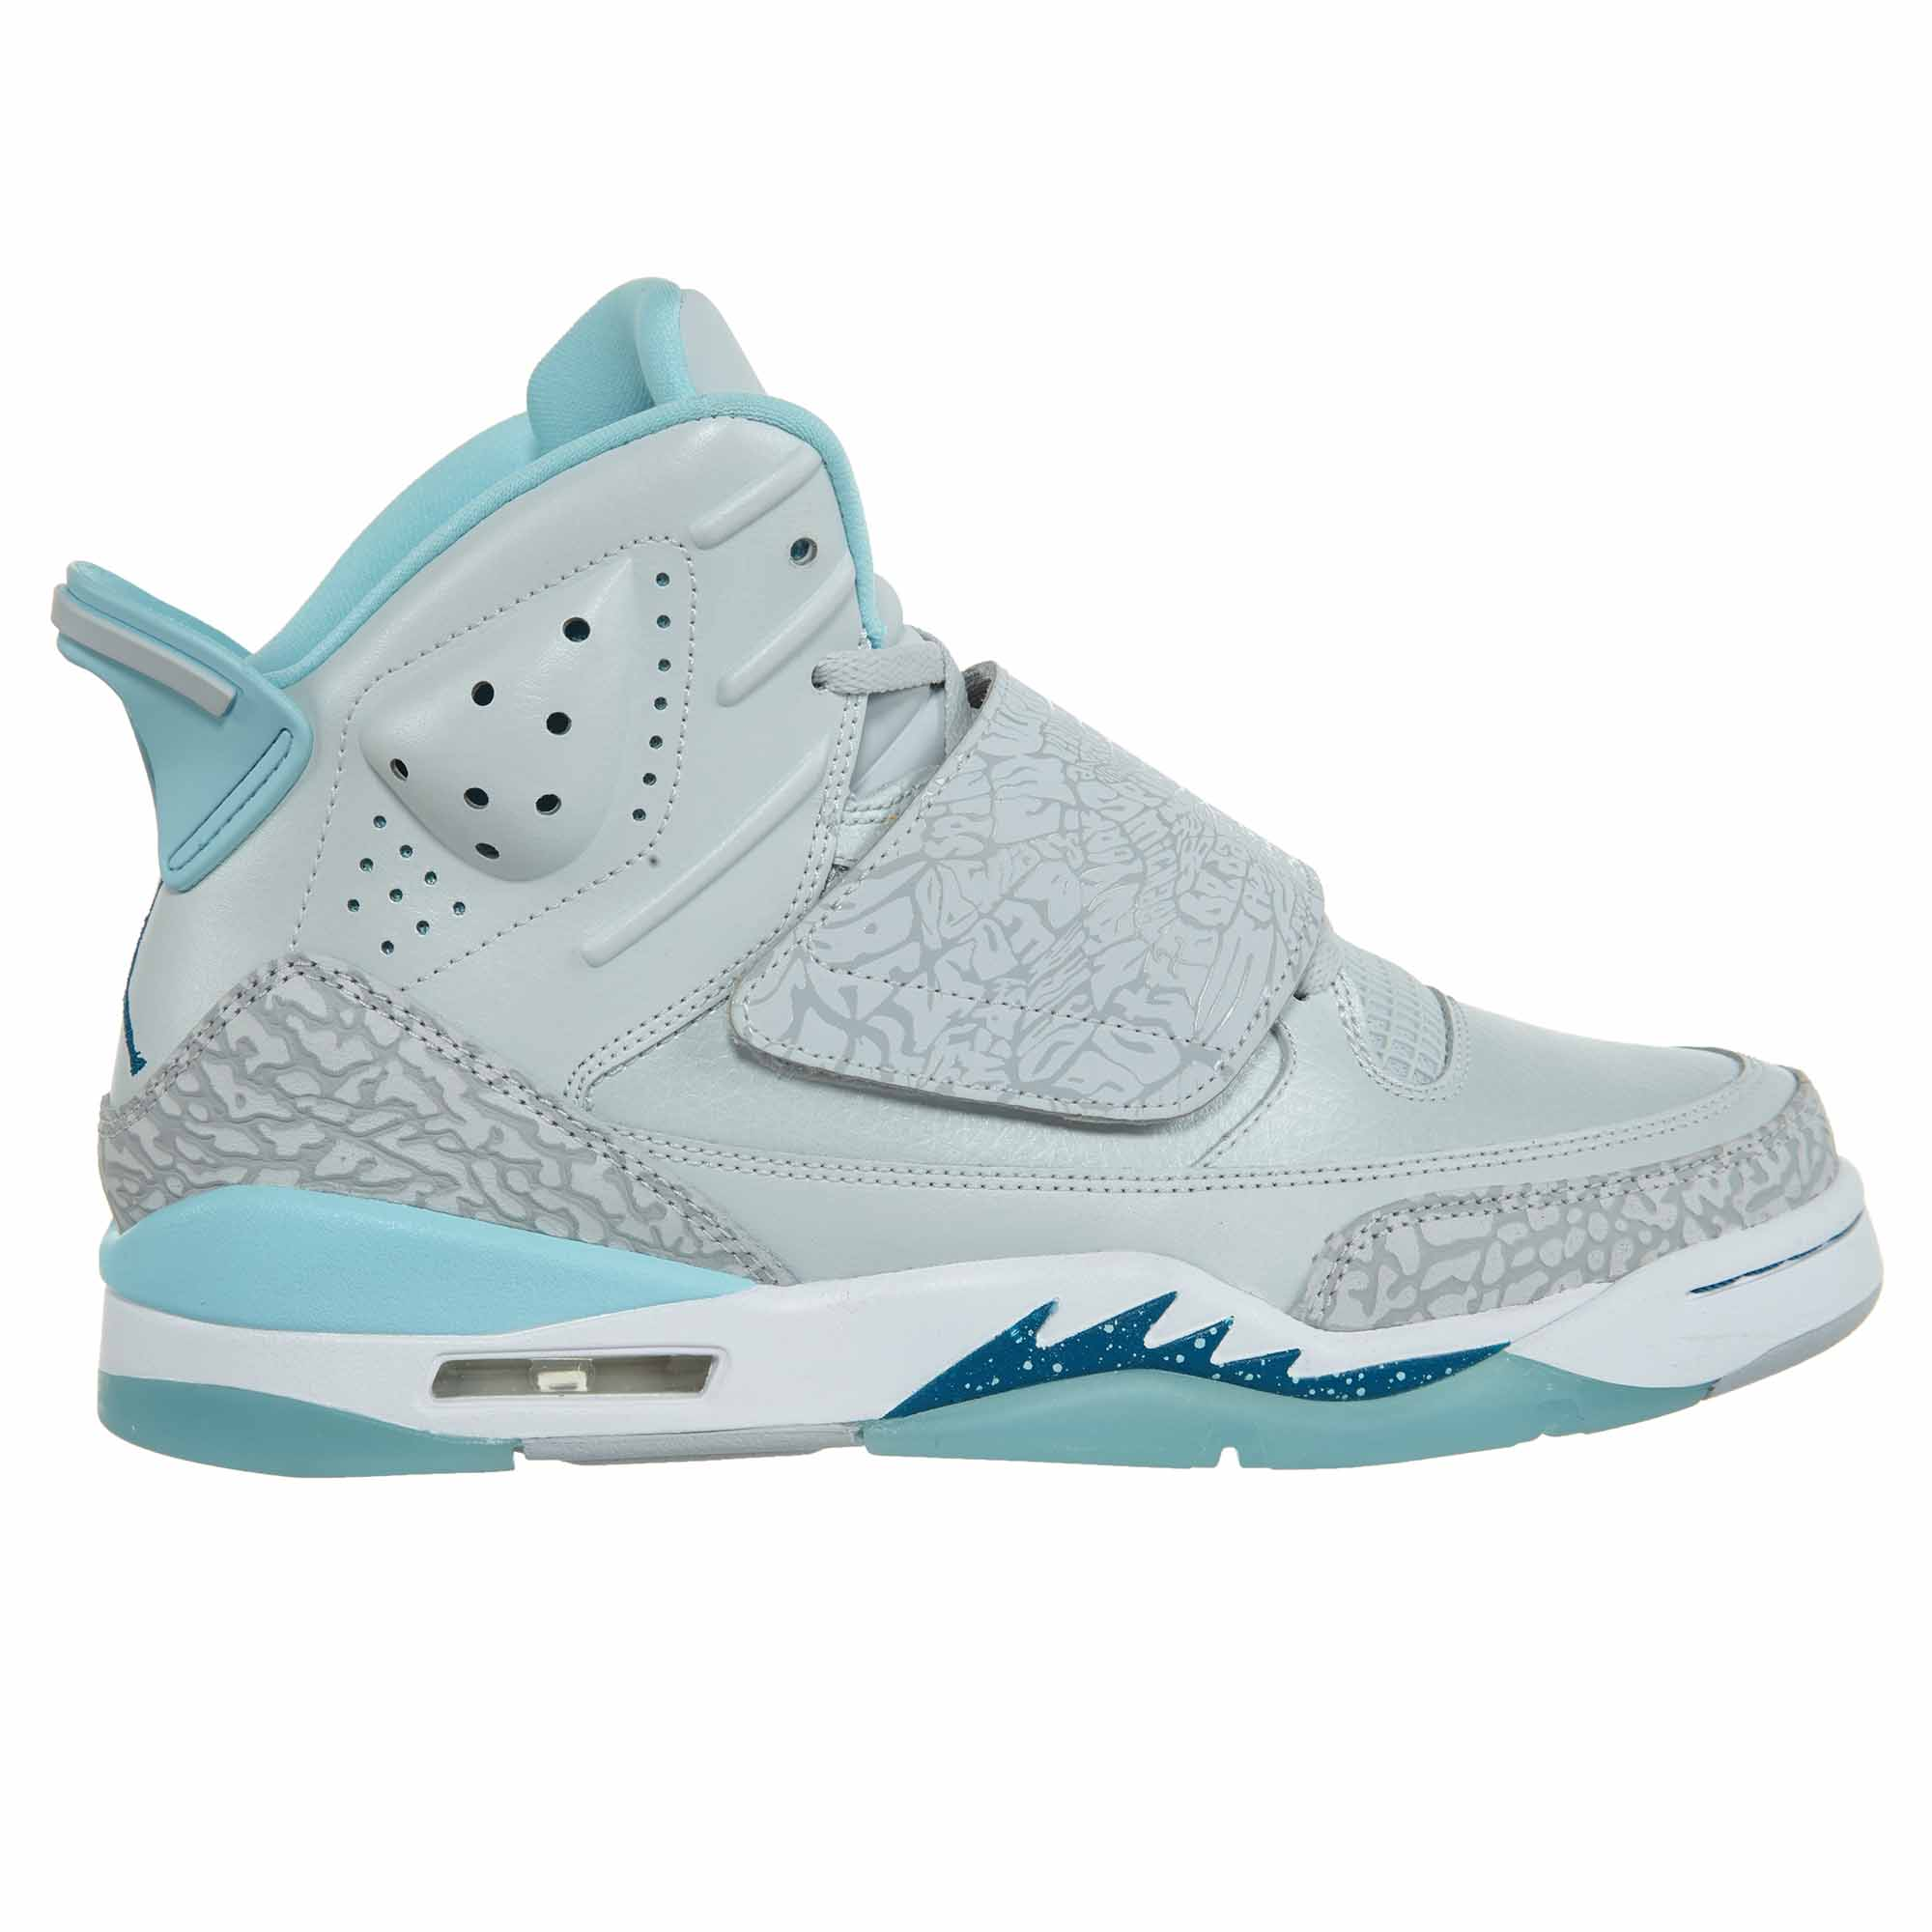 d9a06315f3aed6 ... coupon kids air jordan son of mars gs pure platinum green abyss steel  blue 51 walmart